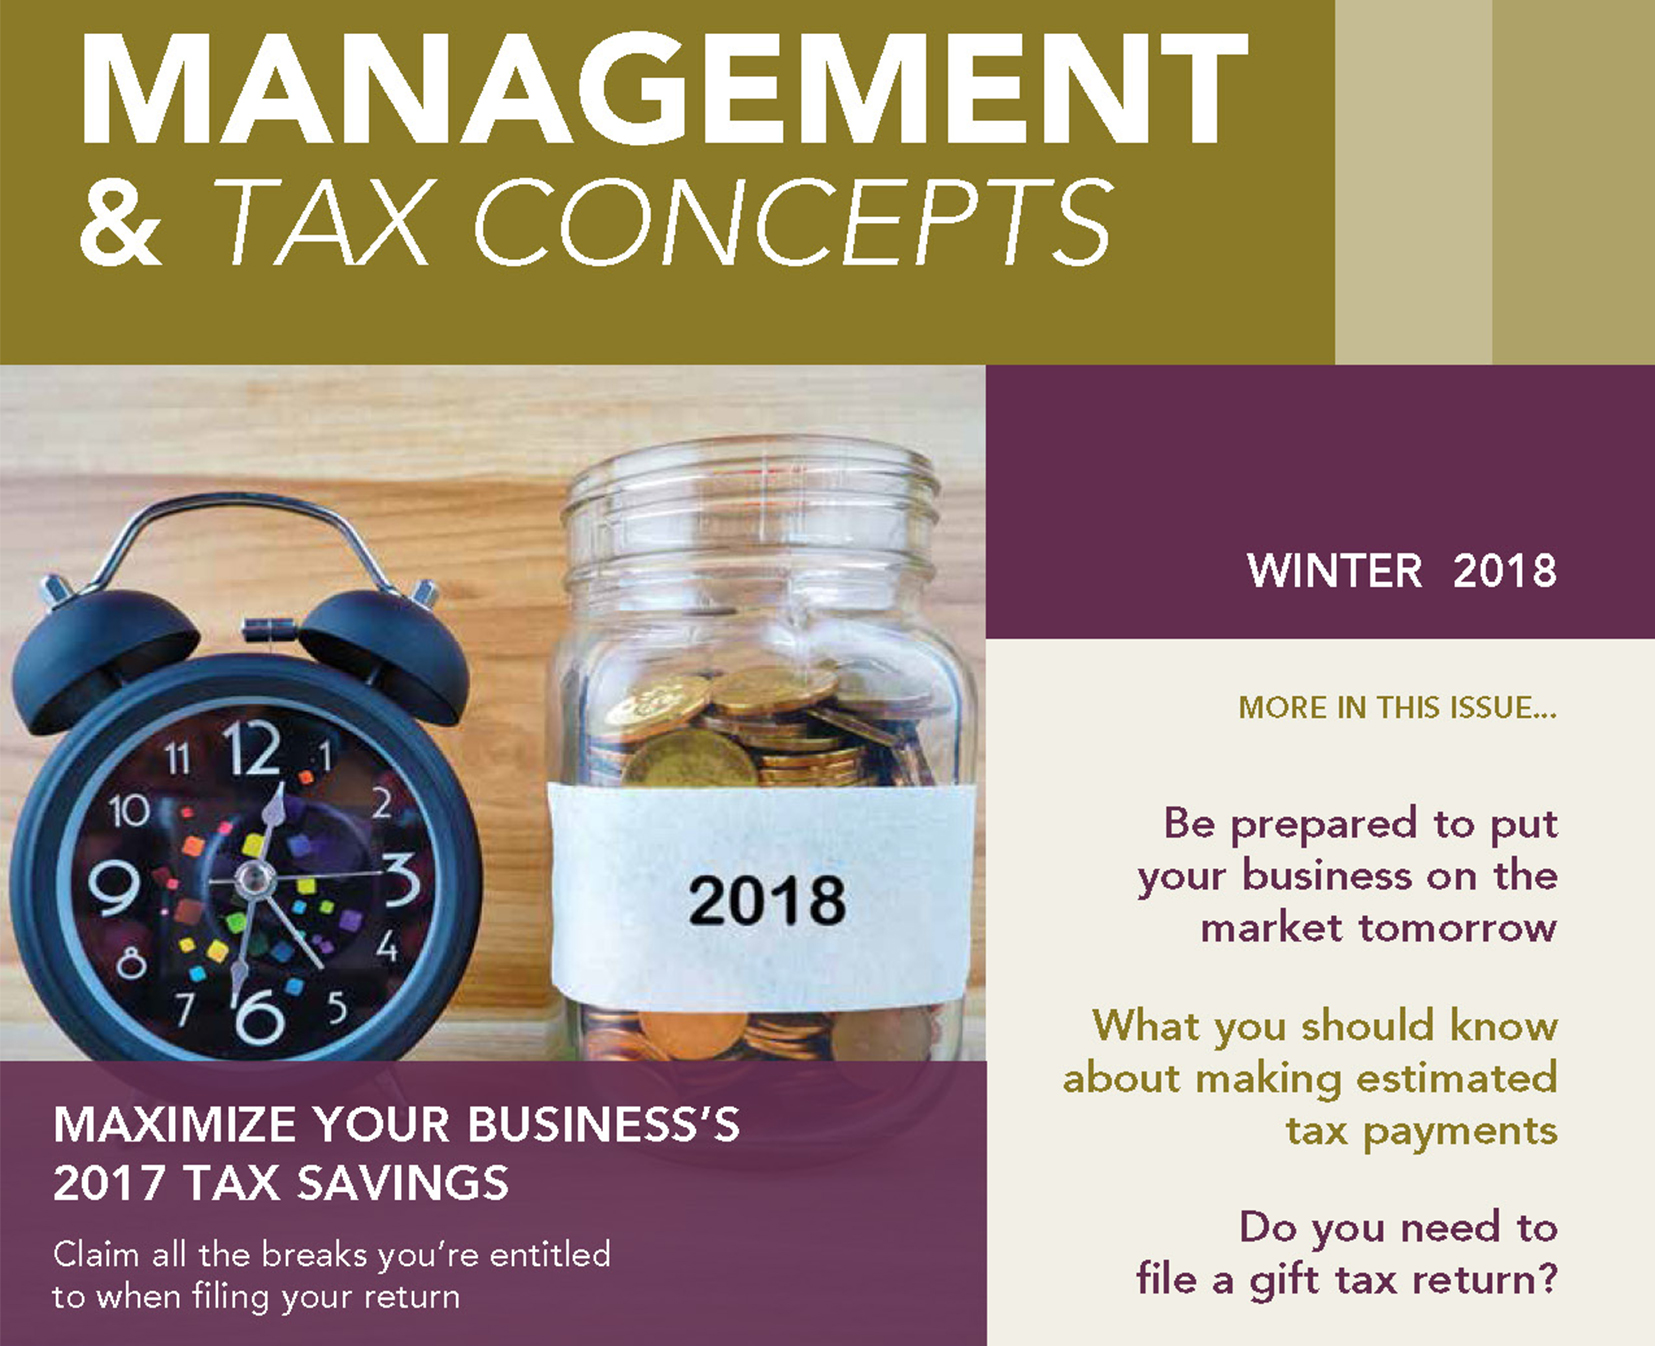 Management & Tax Concepts